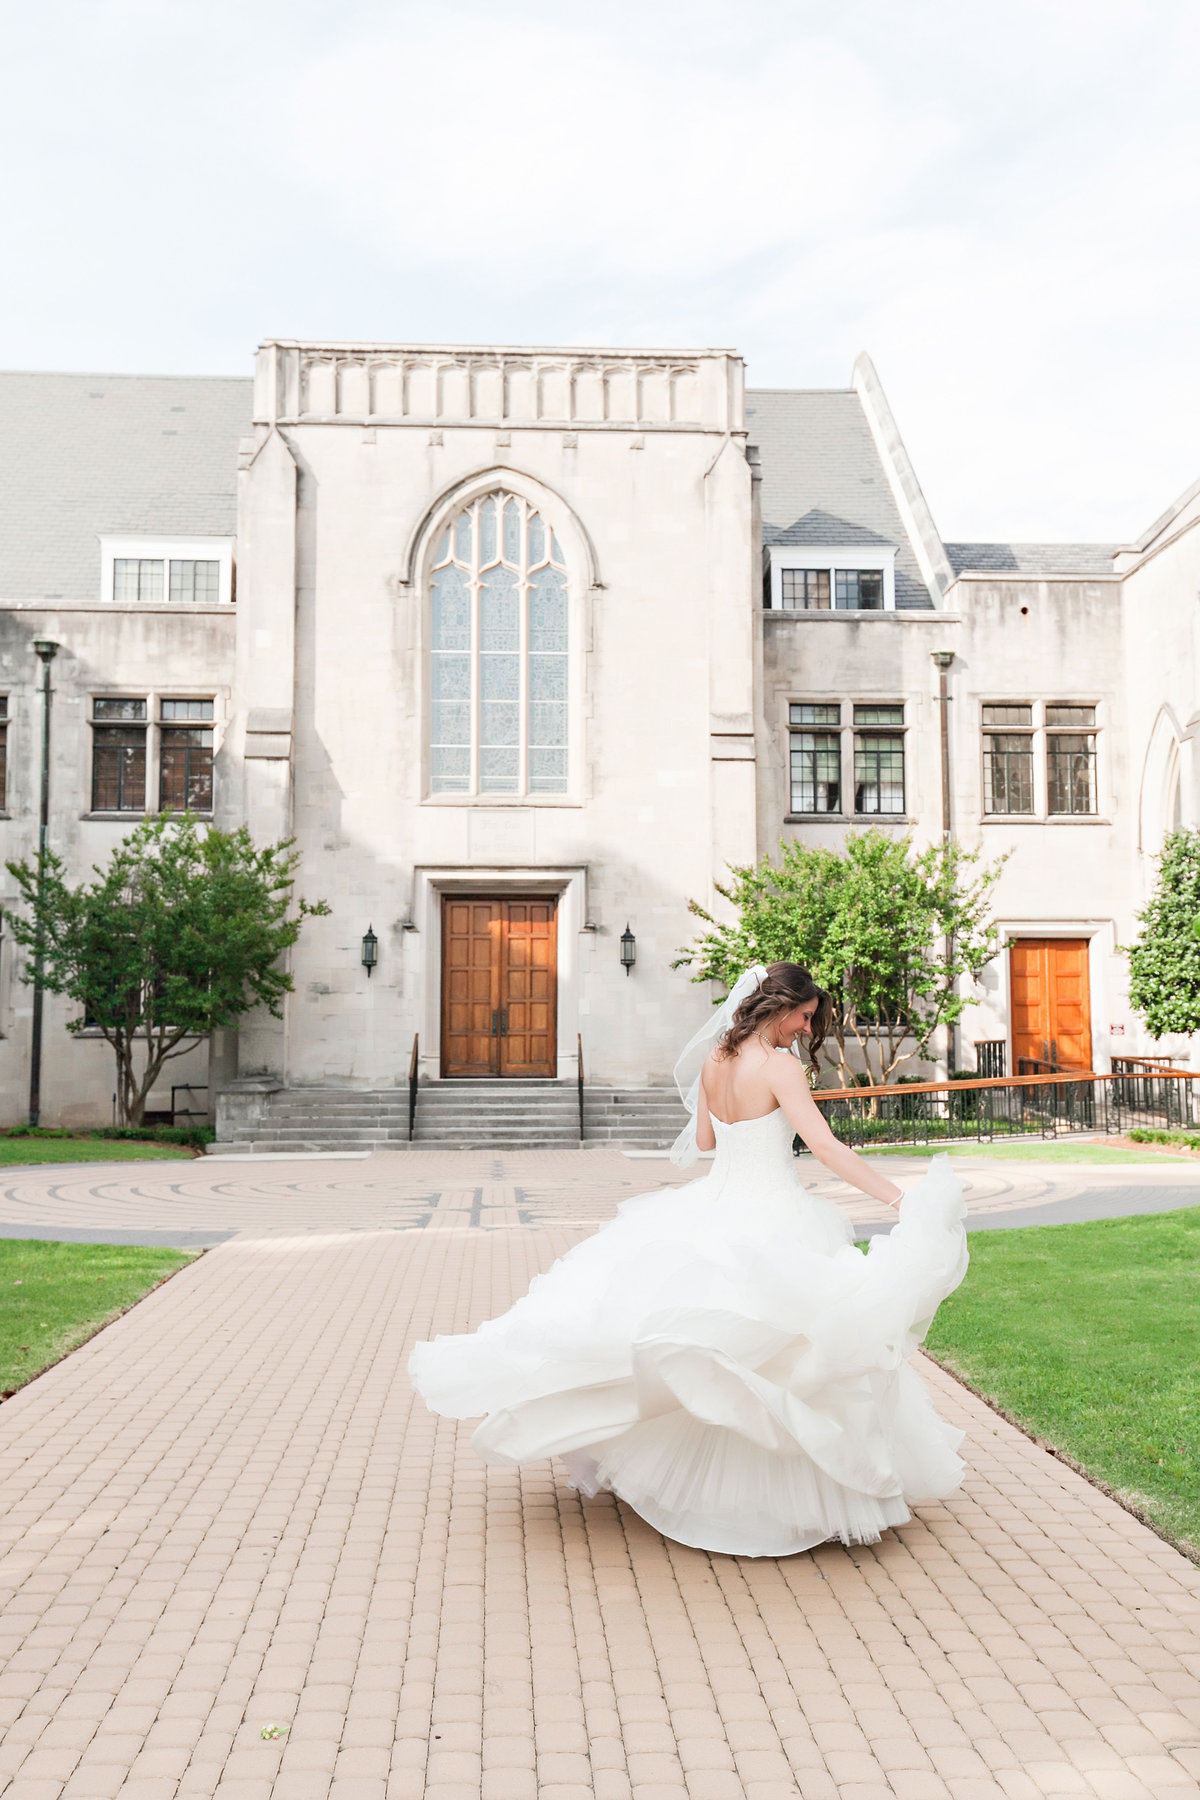 Macon Georgia Bride Portrait Wedding Dress Library Ballroom Spring Romantic